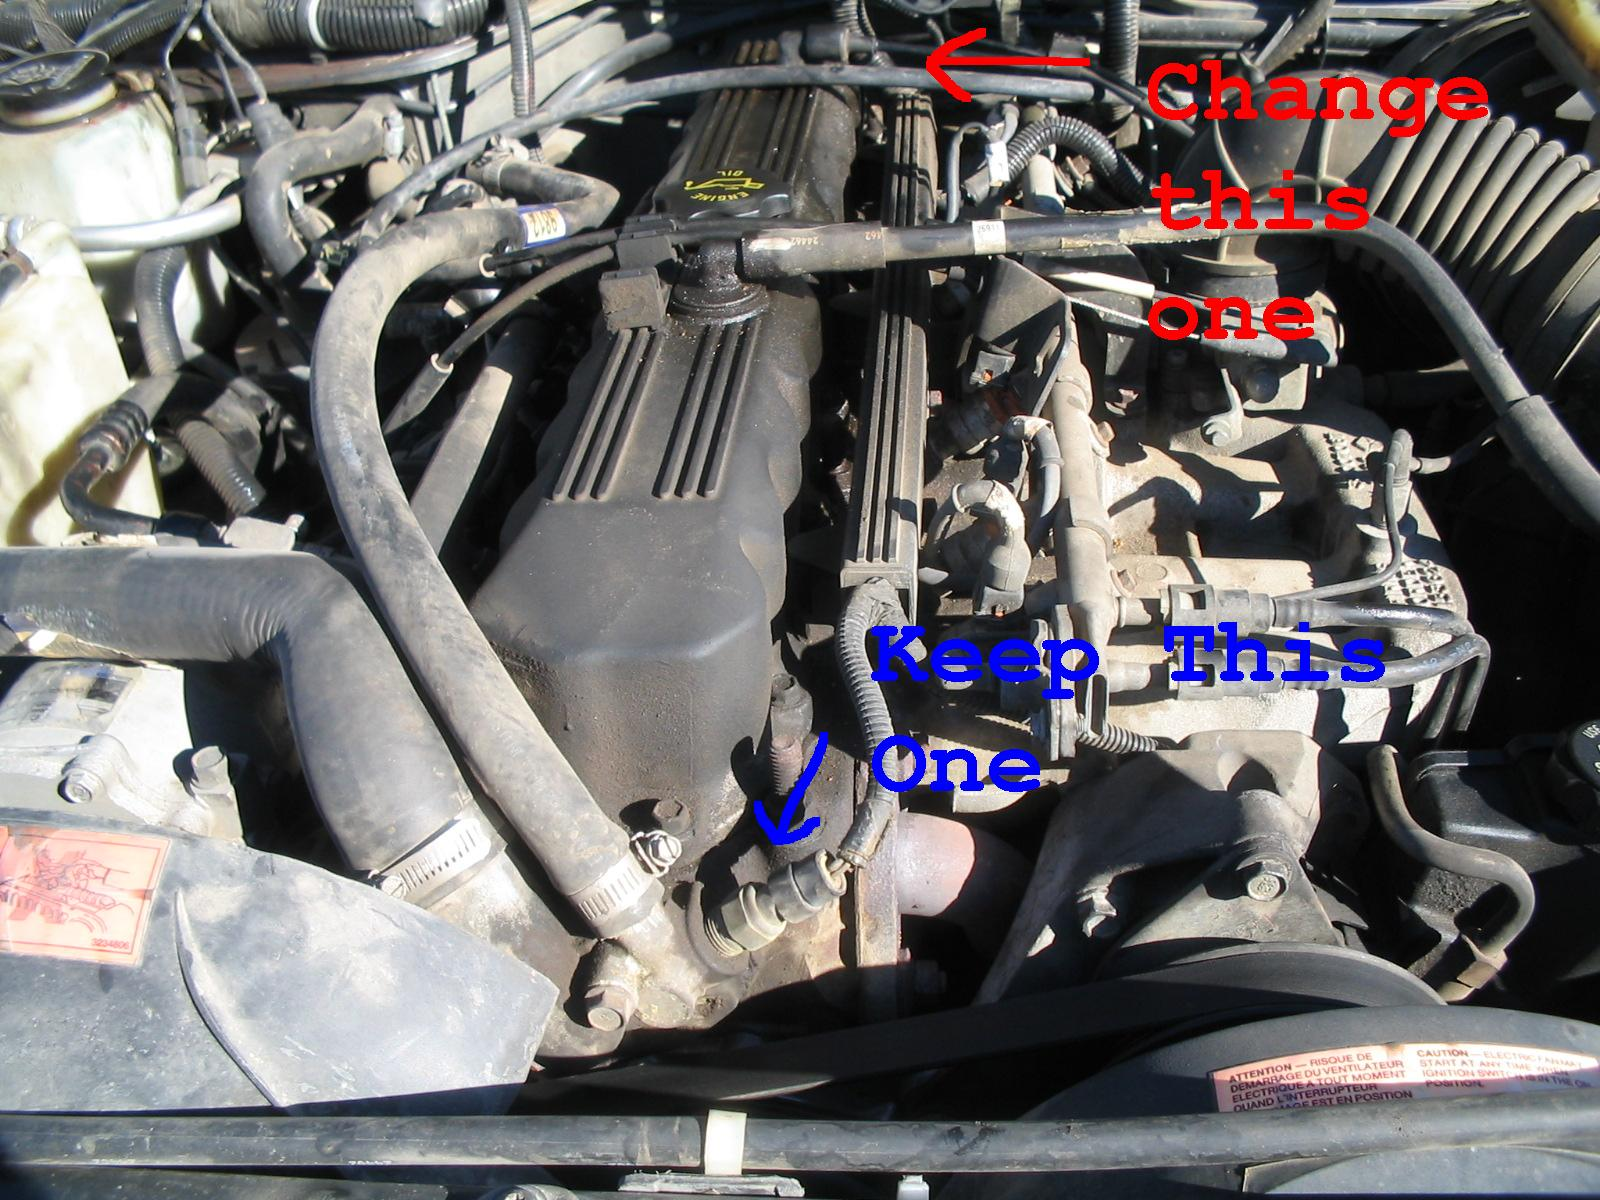 Maxresdefault as well Maxresdefault as well Chevrolet S additionally D T Brendan S Wrecked Jeep Cherokee Back Image in addition Maxresdefault. on jeep cherokee coolant temperature sensor